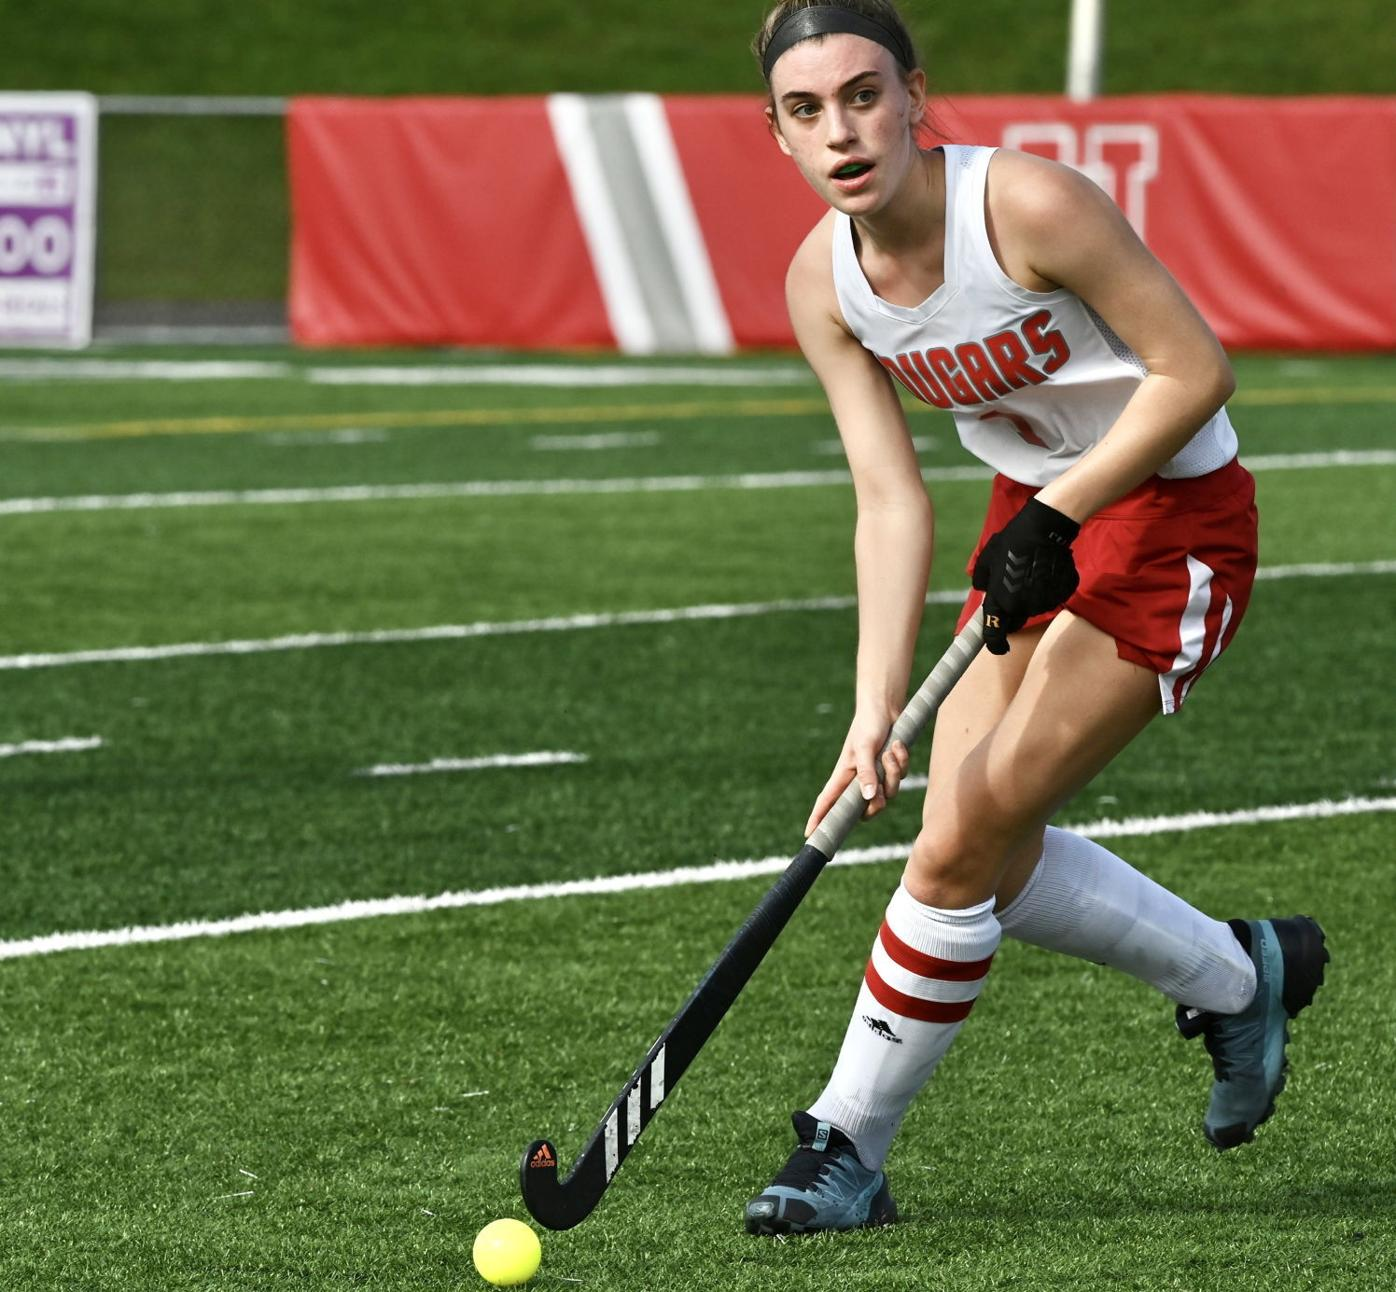 LOCAL ROUNDUP: Lady Cougars win in field hockey, soccer